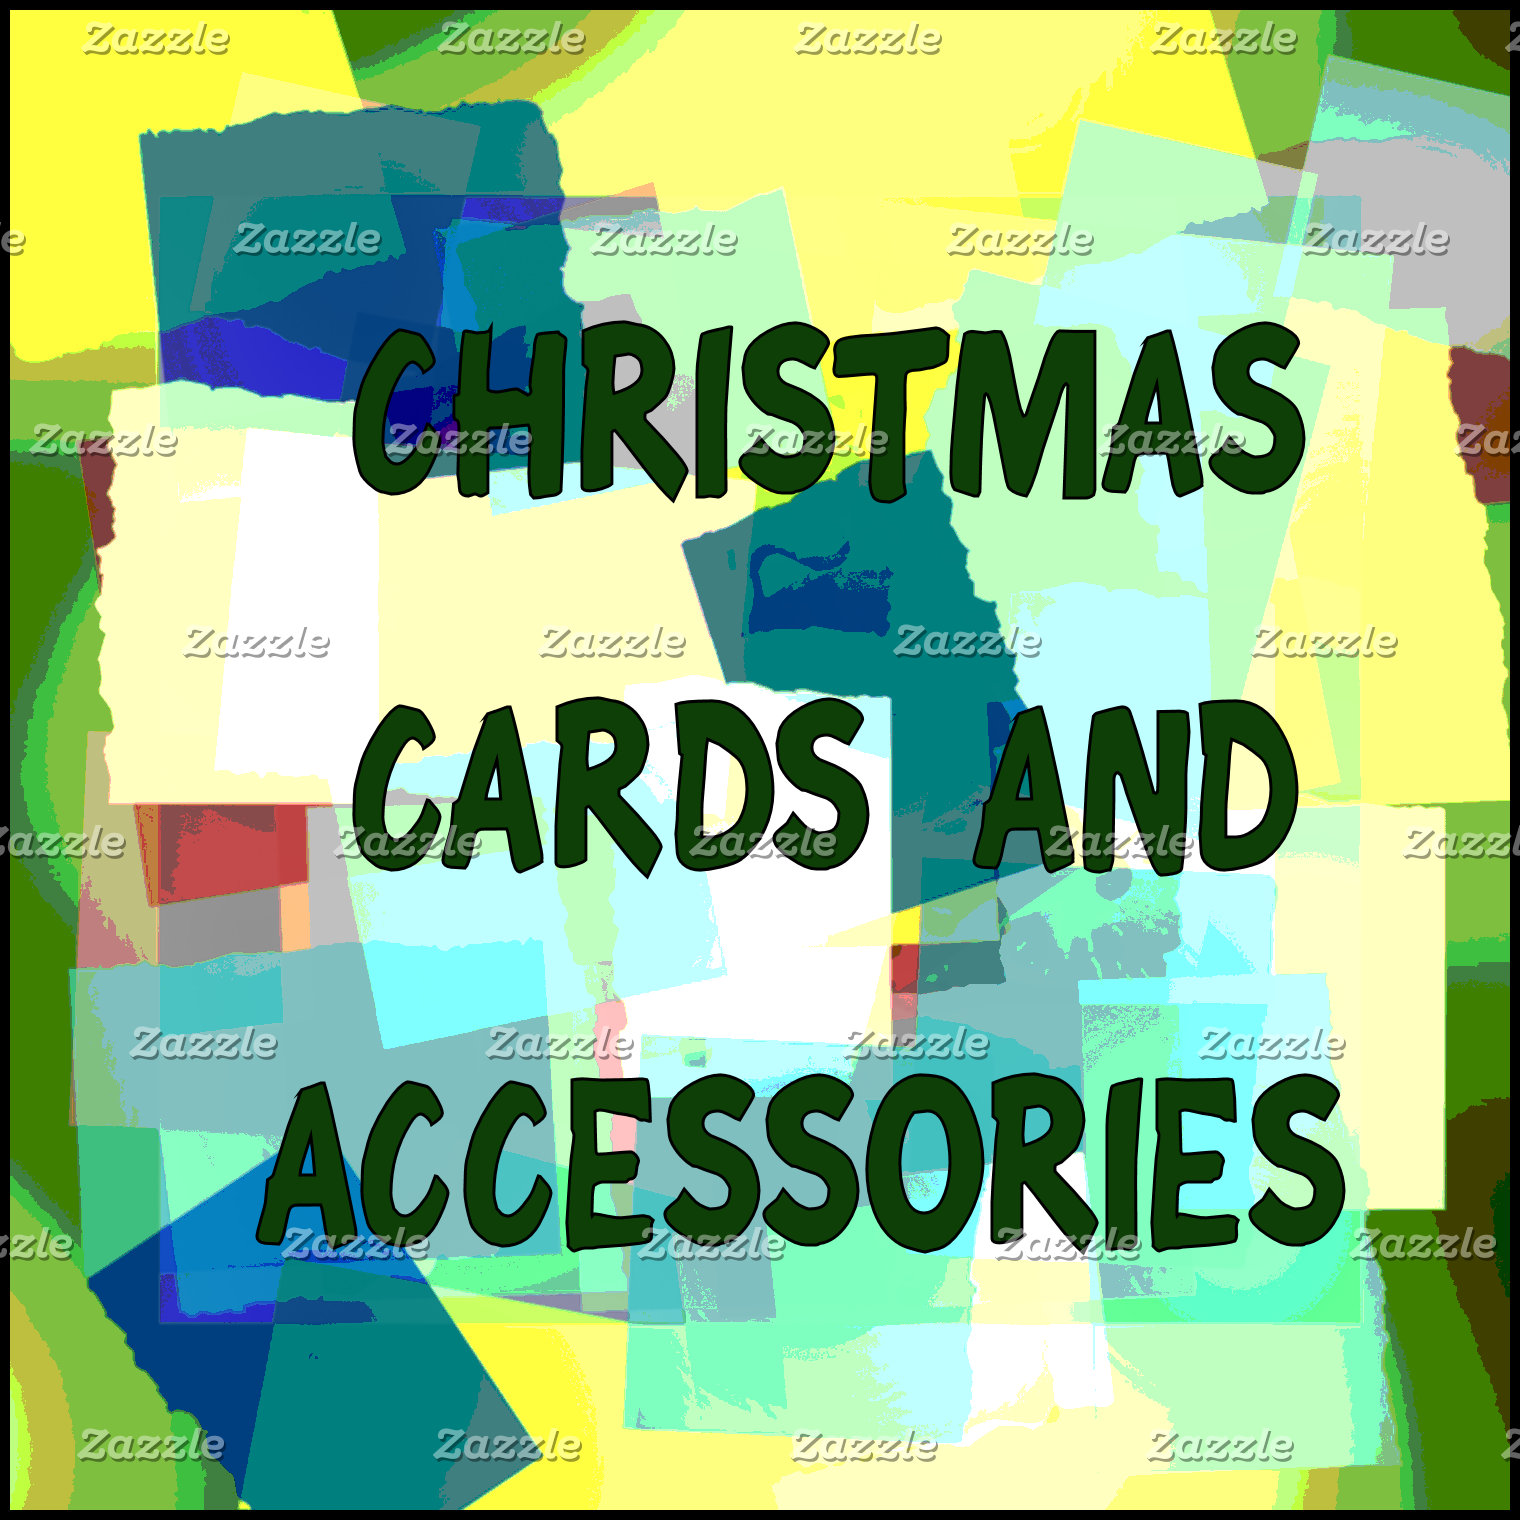 CHRISTMAS CARDS AND ACCESSORIES